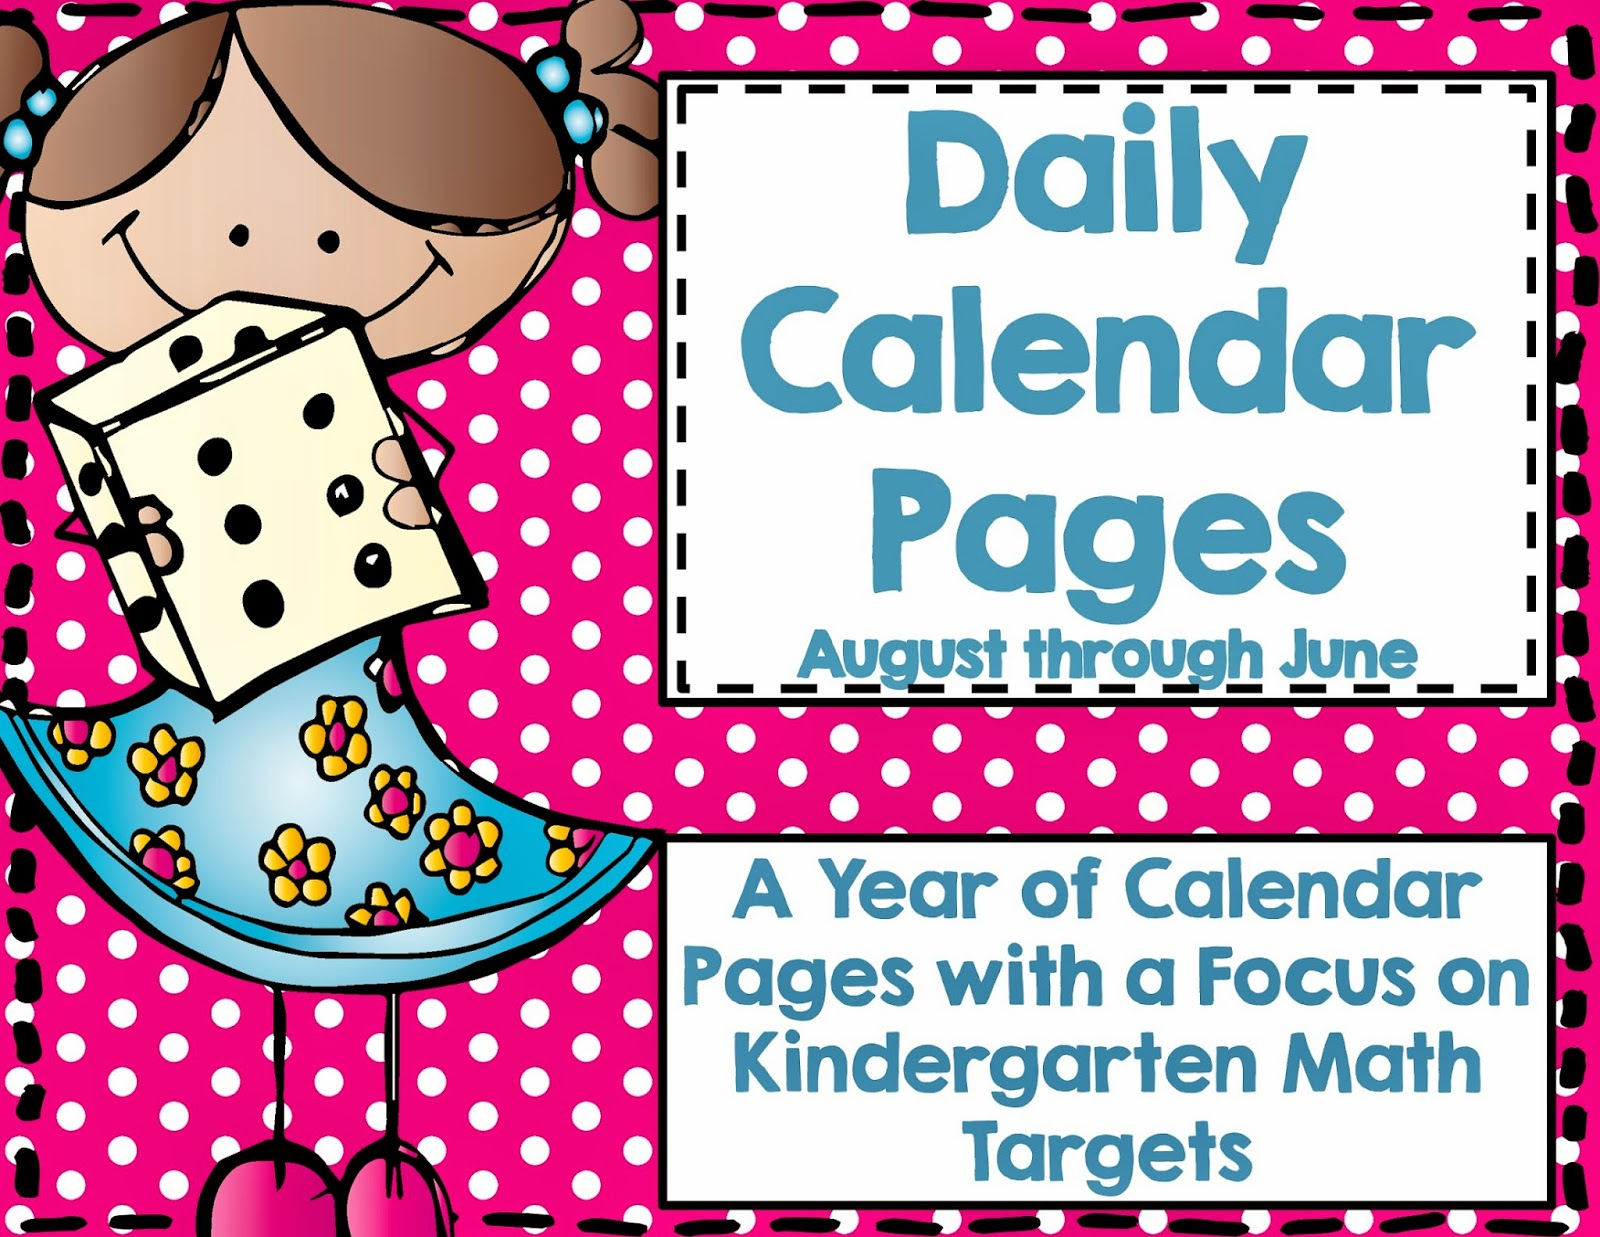 http://www.teacherspayteachers.com/Product/Daily-Calendar-Pages-August-through-June-1365270